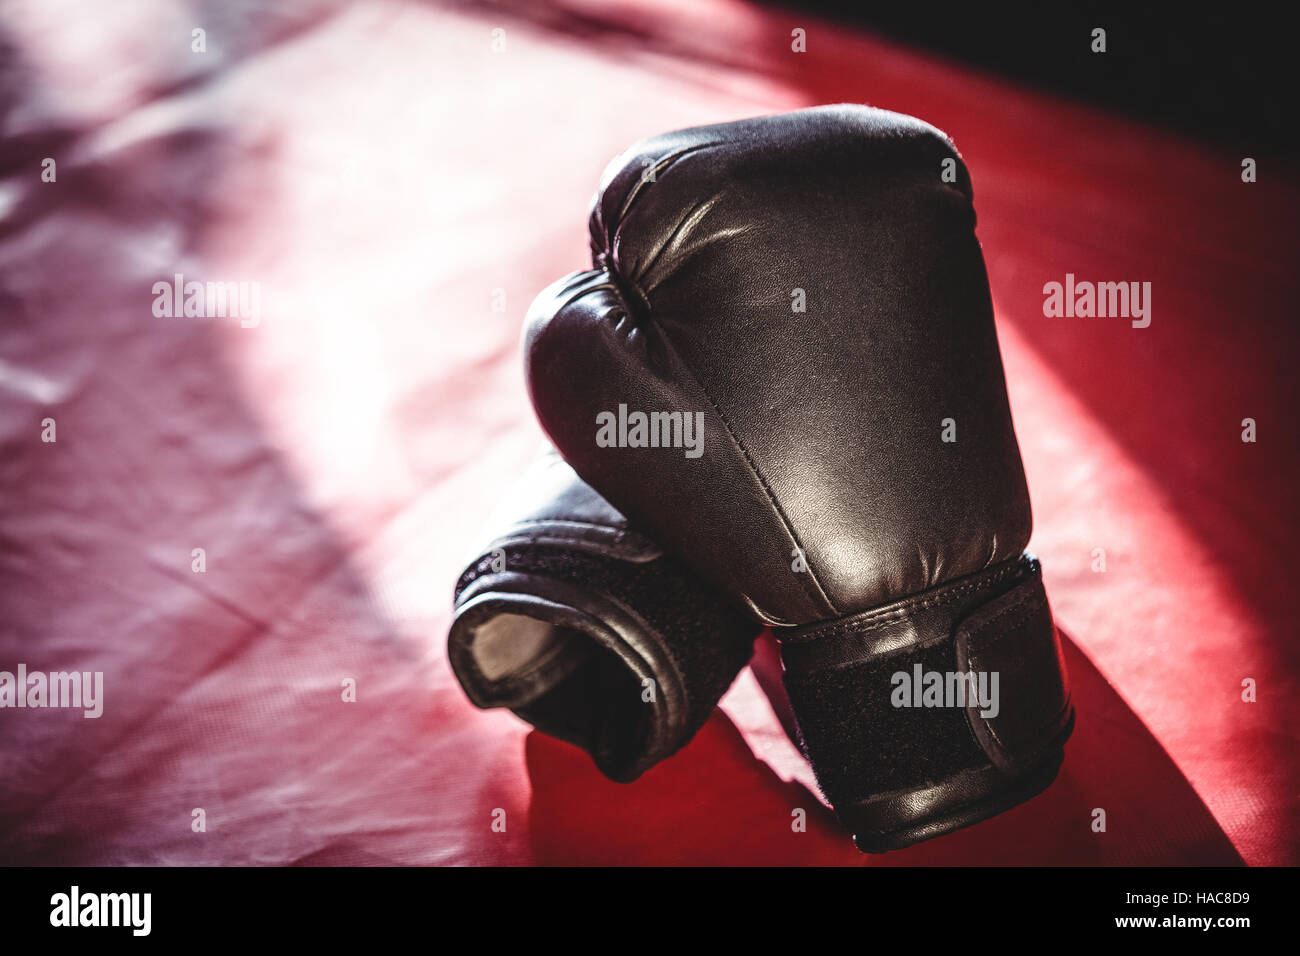 Pair of black boxing gloves - Stock Image